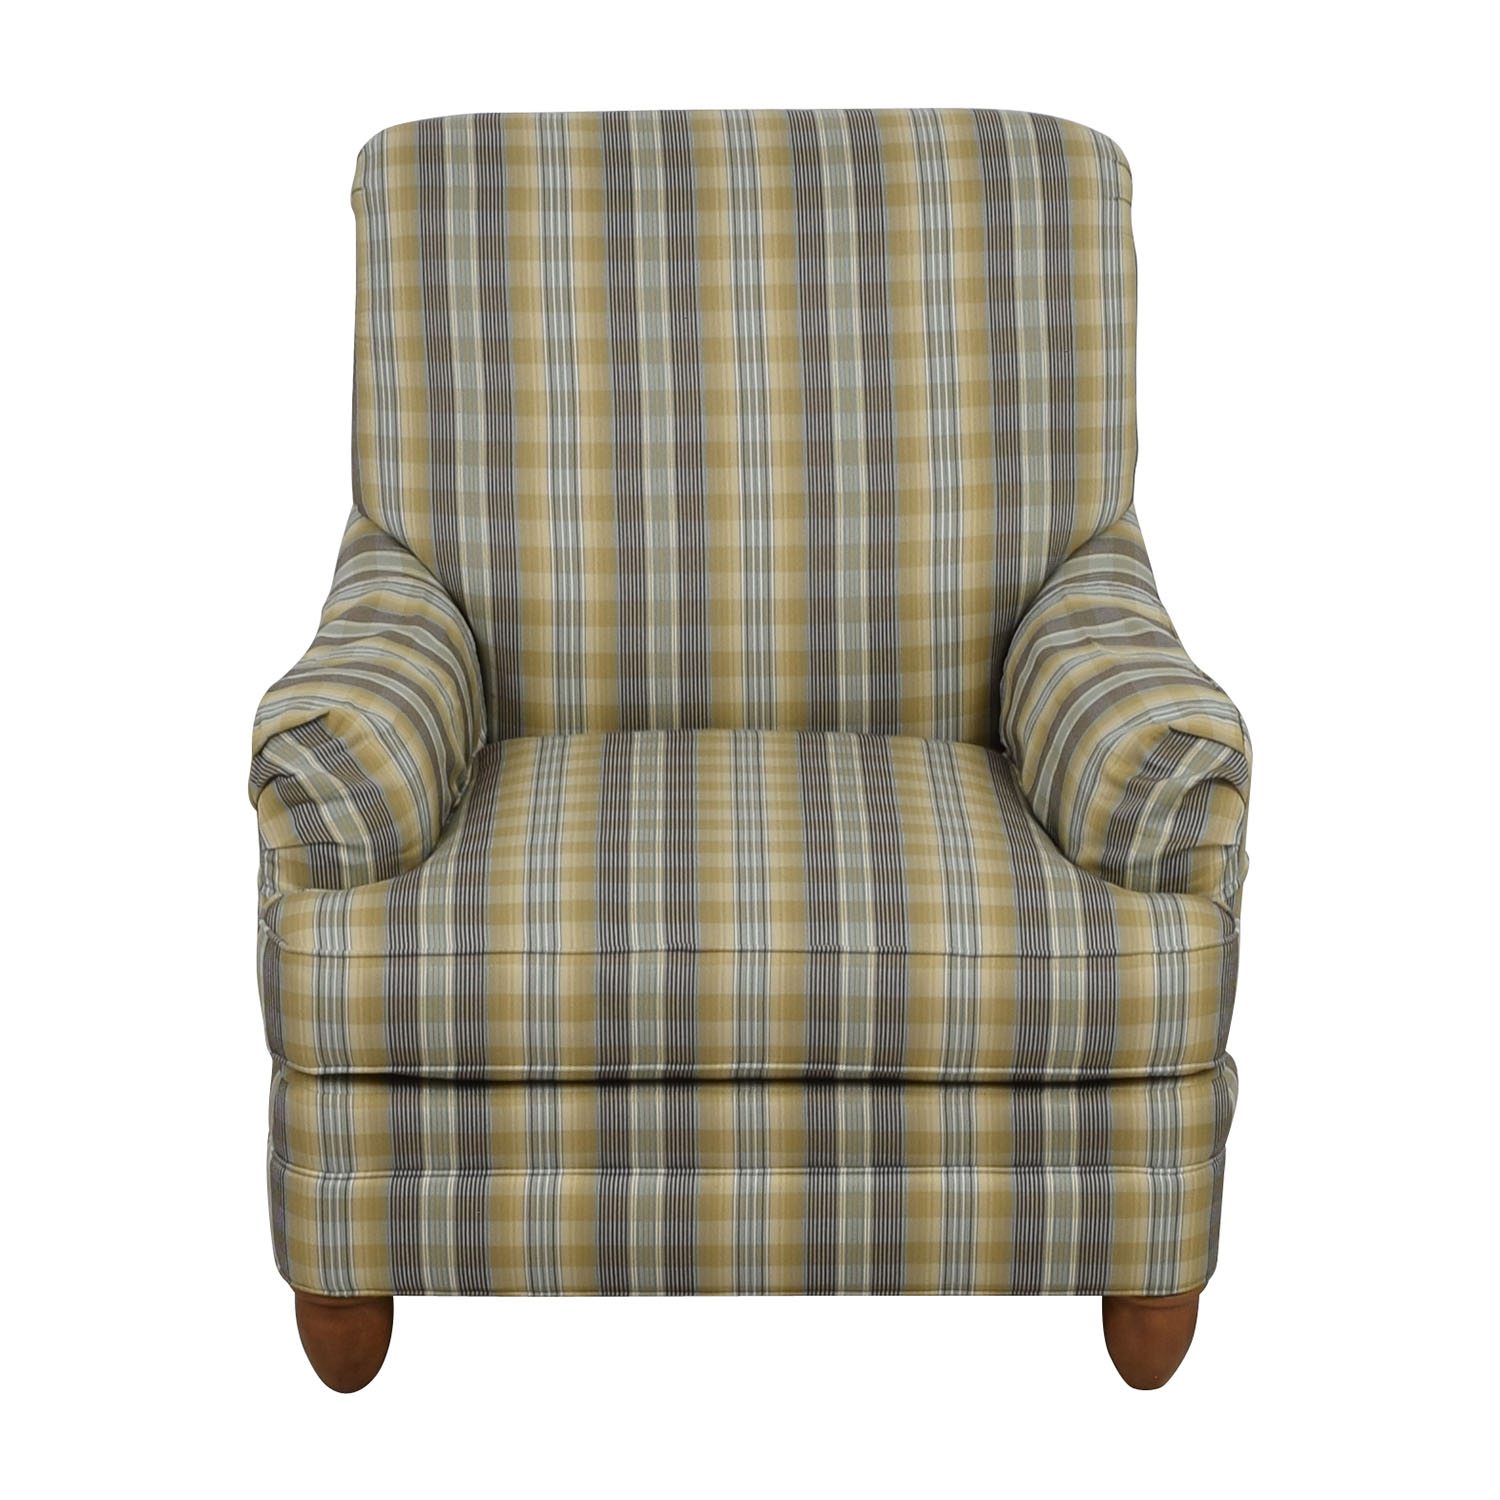 Ethan Allen Ethan Allen Plaid Arm Chair second hand